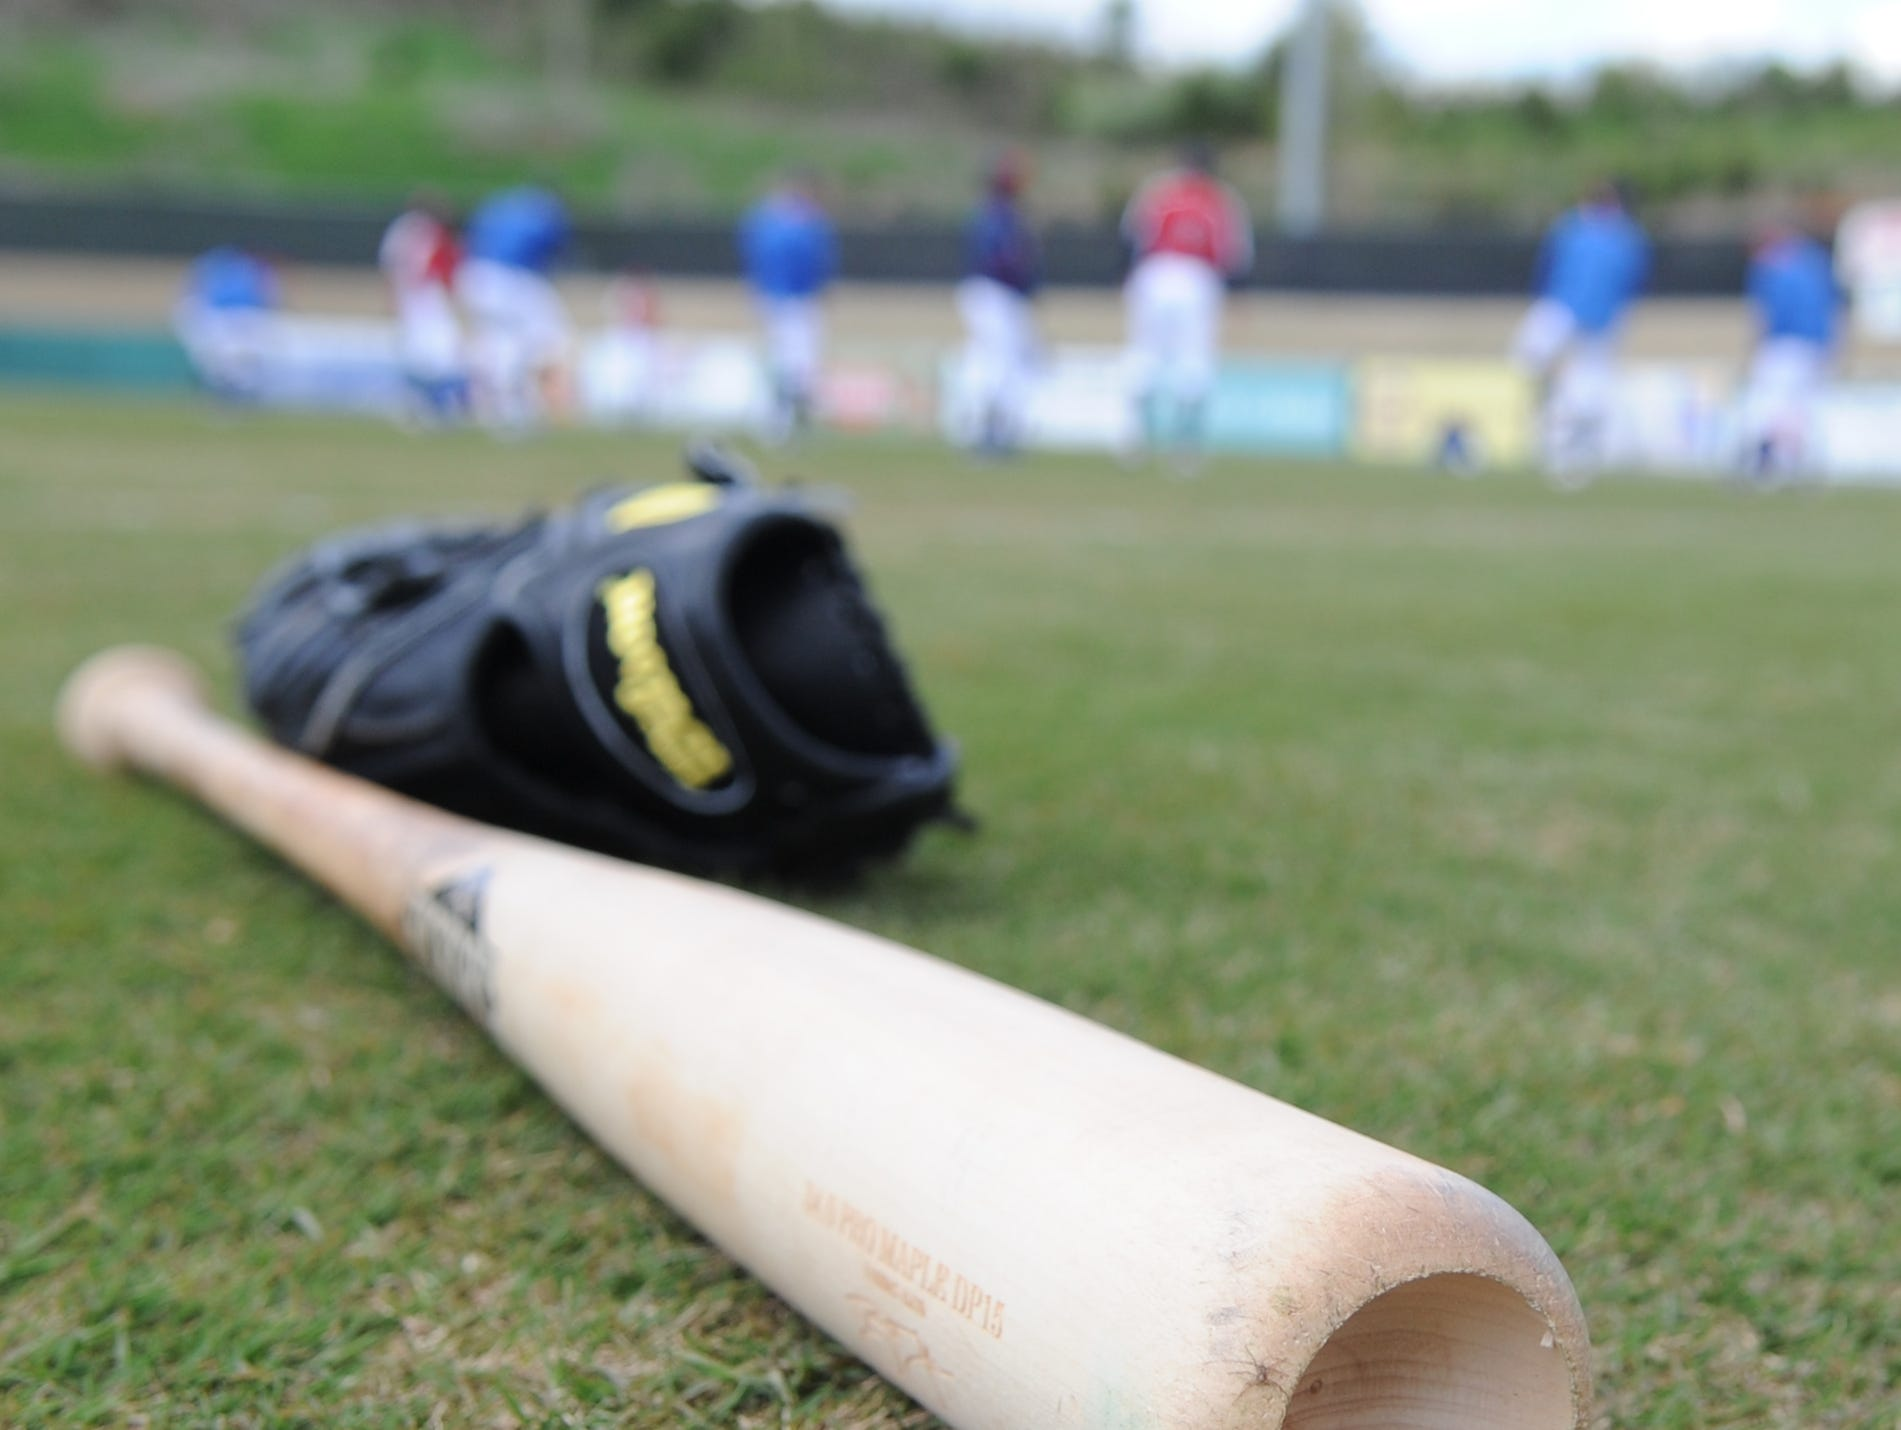 Tennessee Smokies players warm up before media day at Smokies Park on Tuesday, April 5, 2011. The Smokies first game will be Thursday night at Chattanooga.